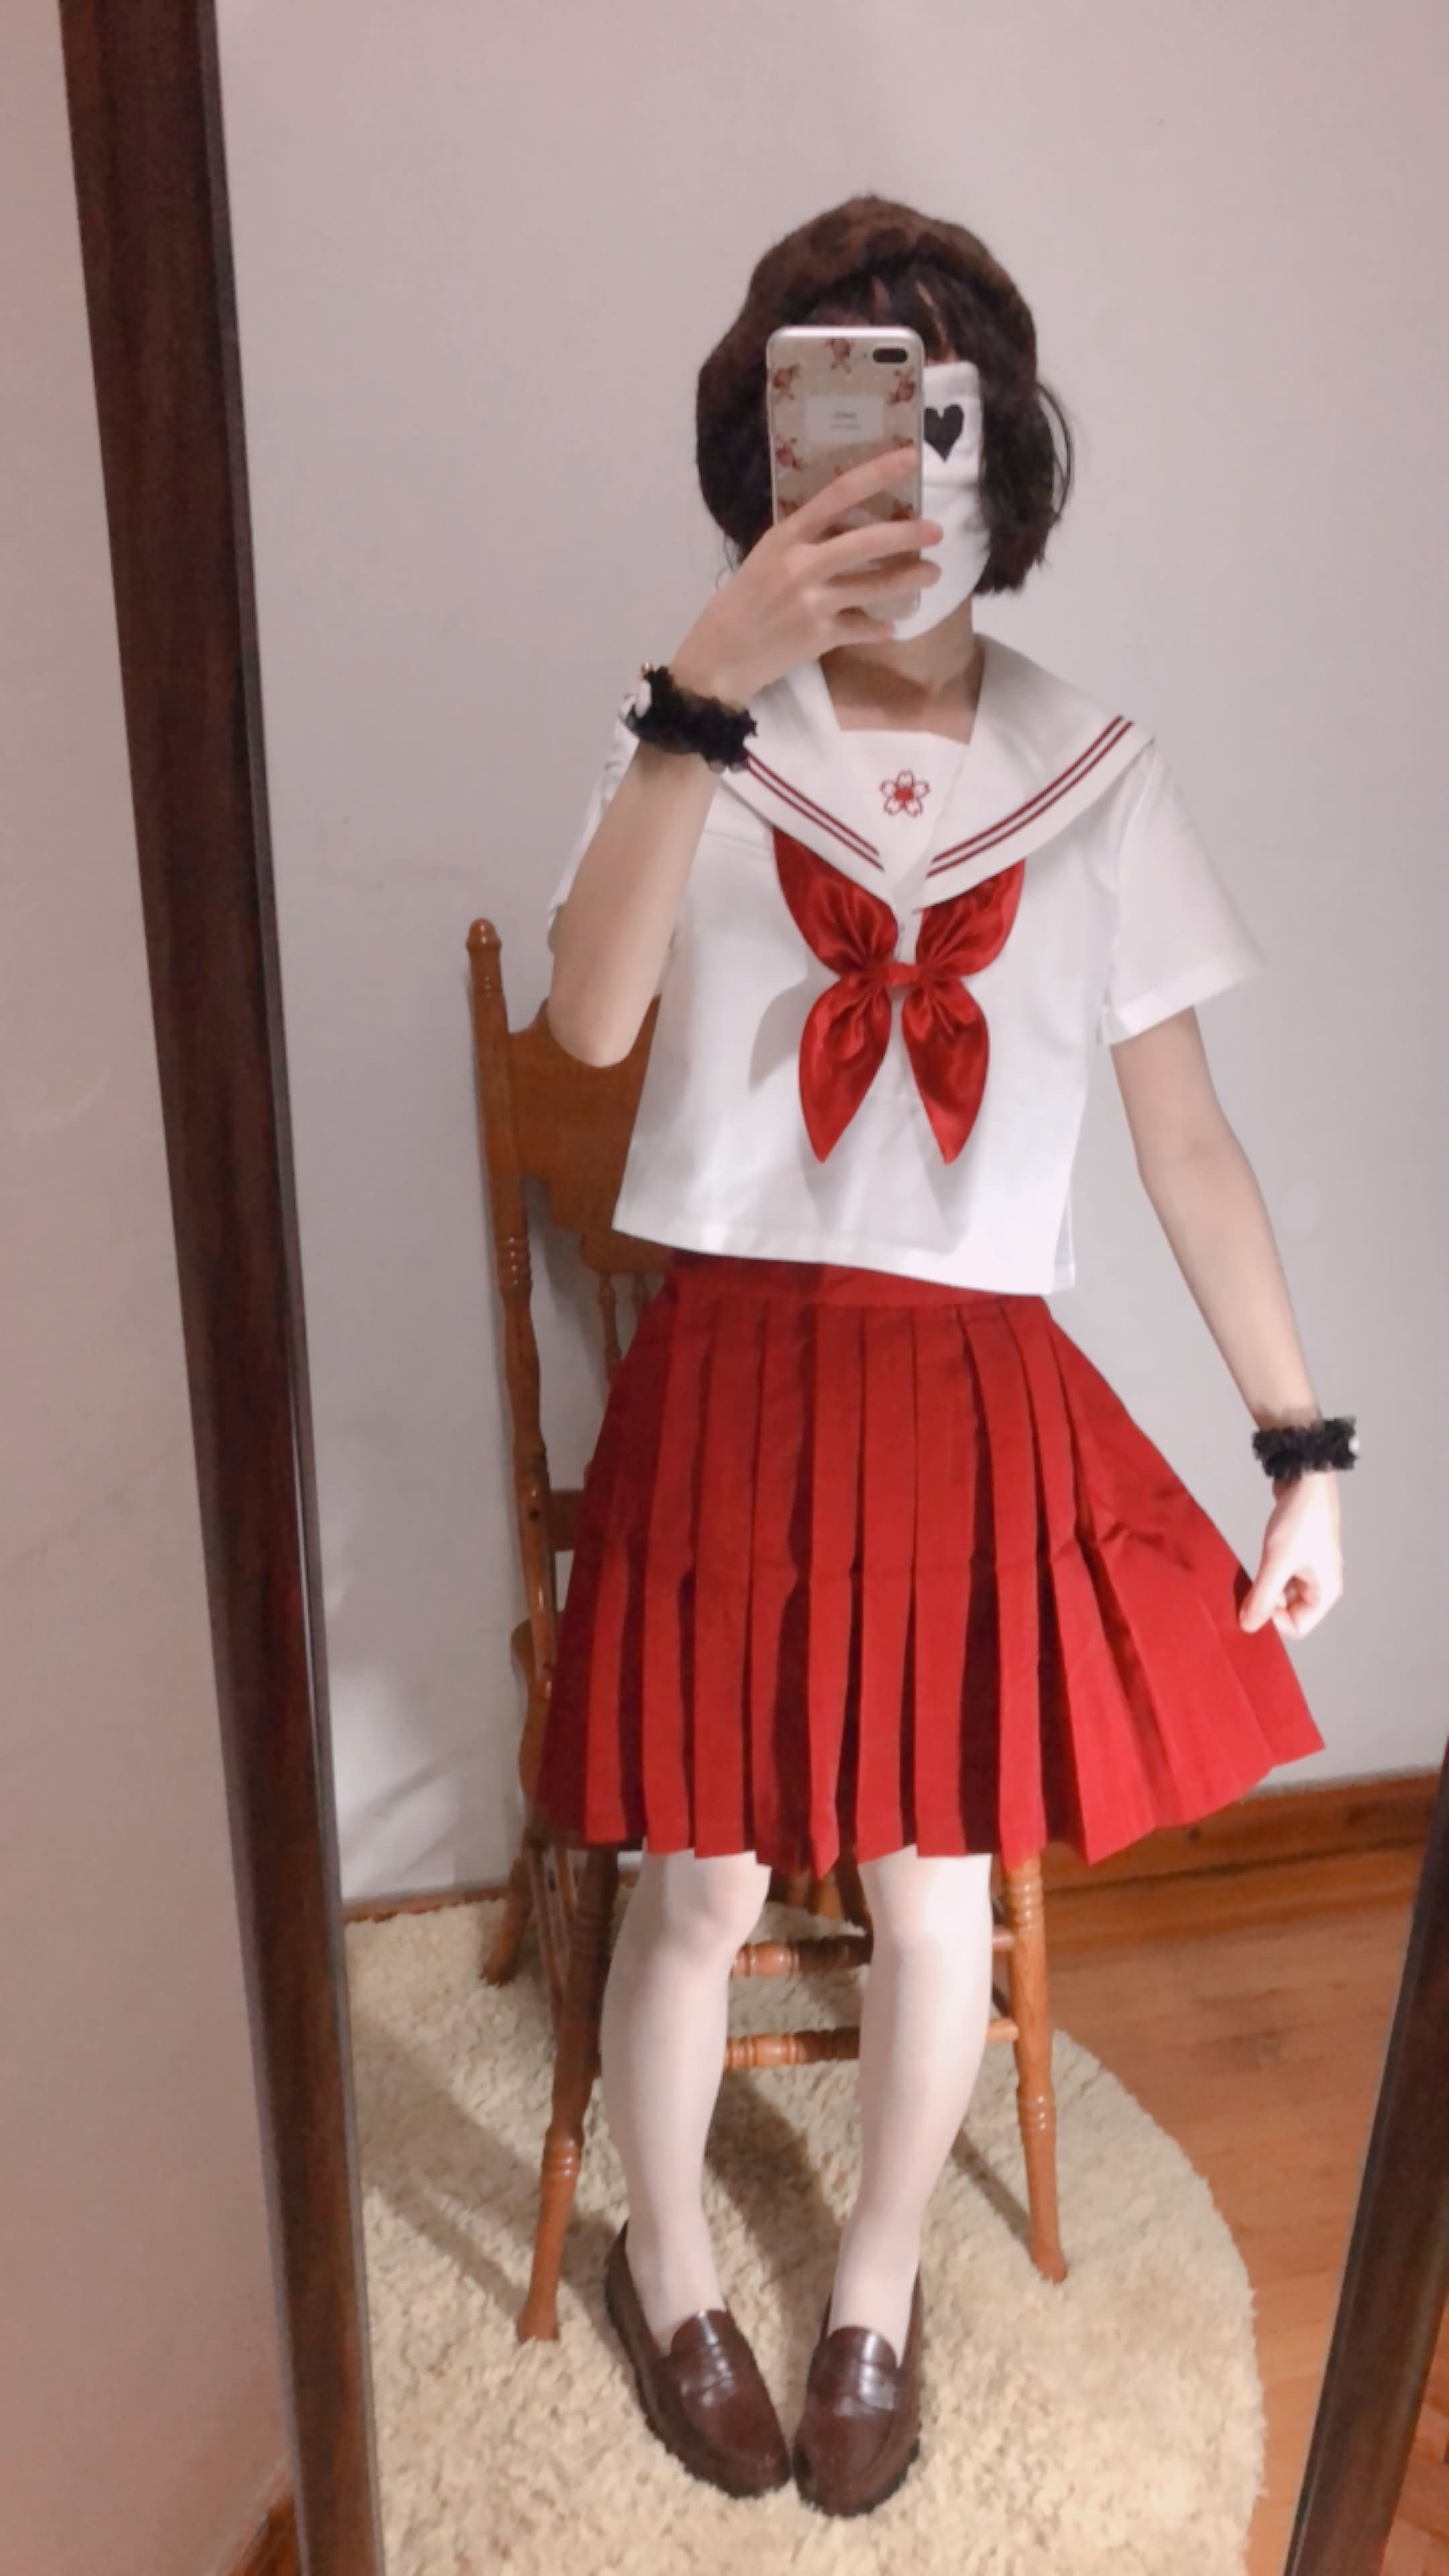 03 - Cosplay red JK uniform white stockings sweet pussy butt 小结巴-红色jk制服白丝 95P